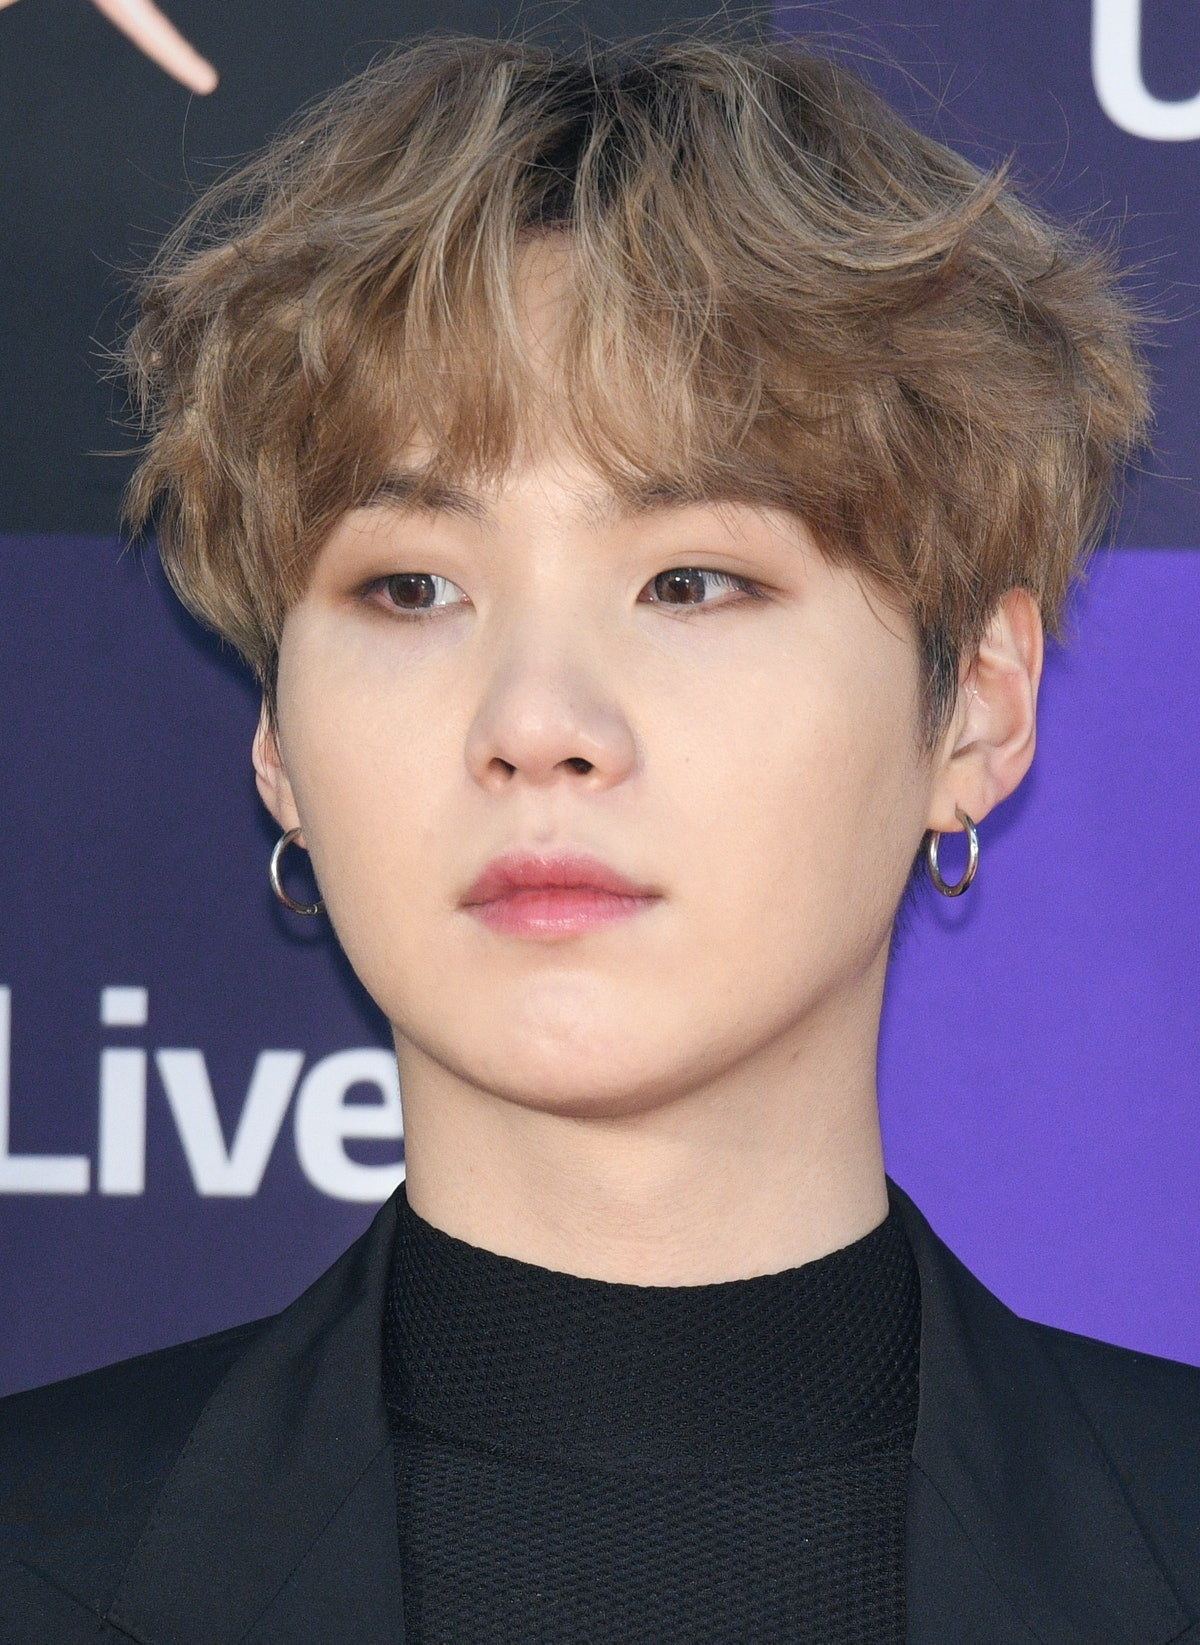 Suga from BTS, whose zodiac sign is Pisces.